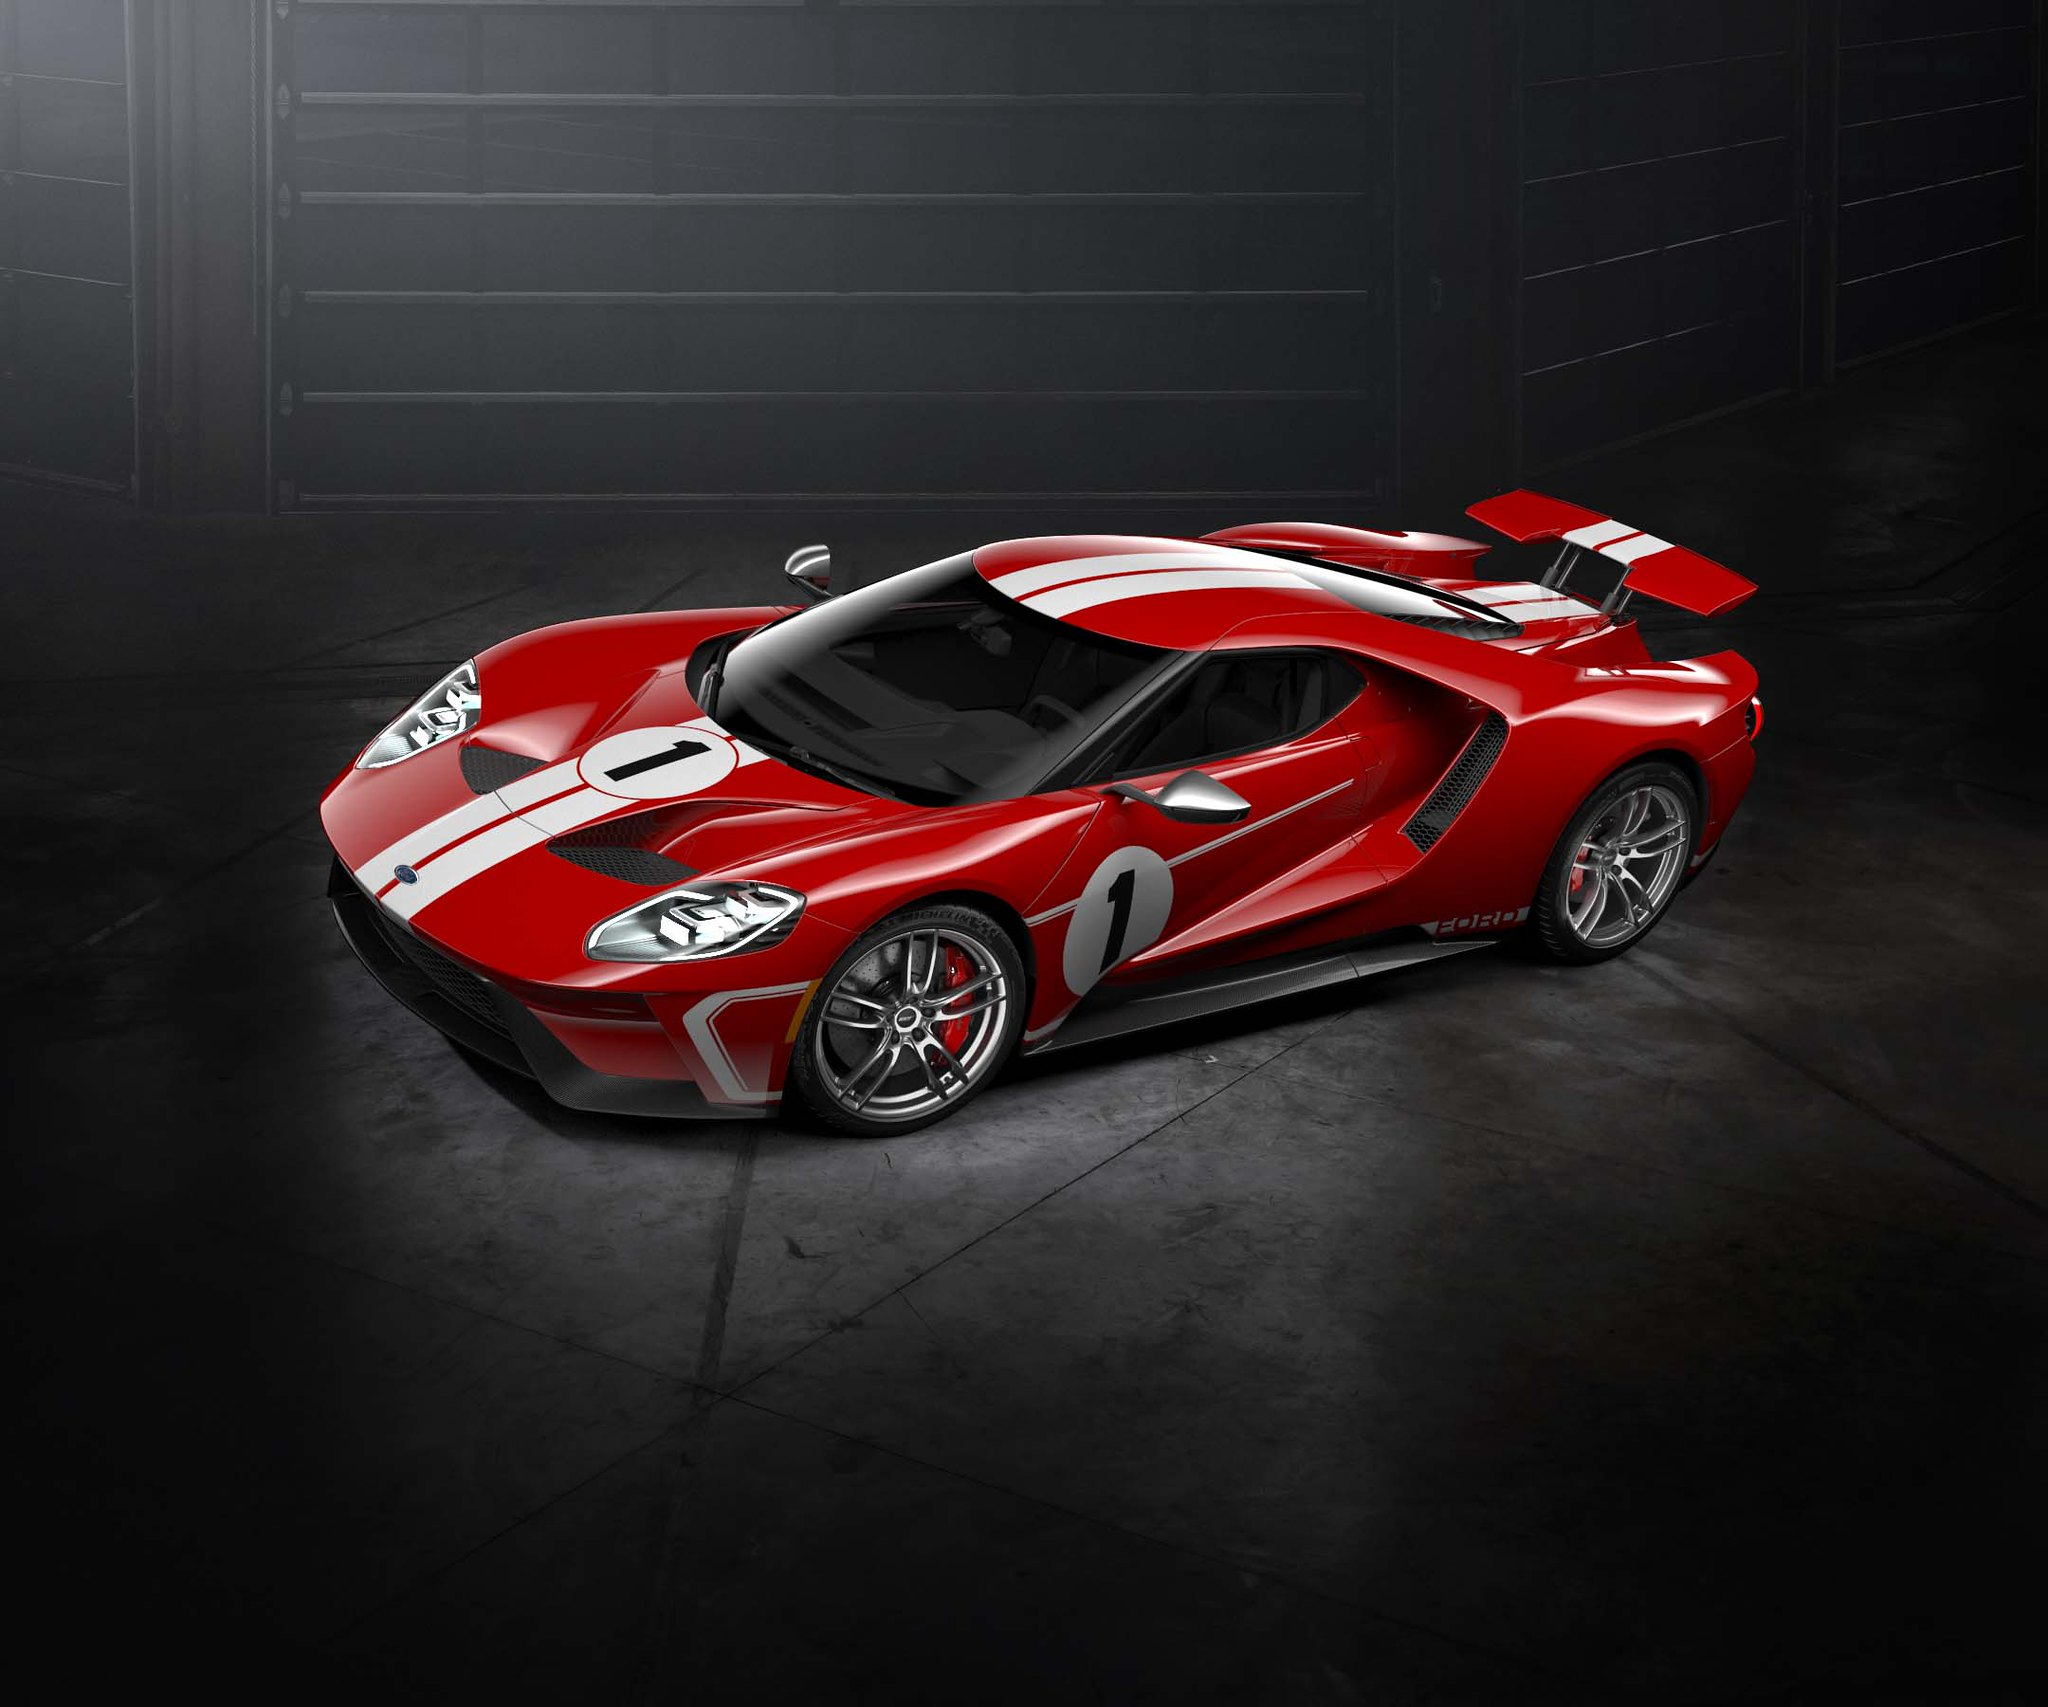 Ford GT '67 Heritage edition honoring historic No. 1 race car introduced for 2018 model year